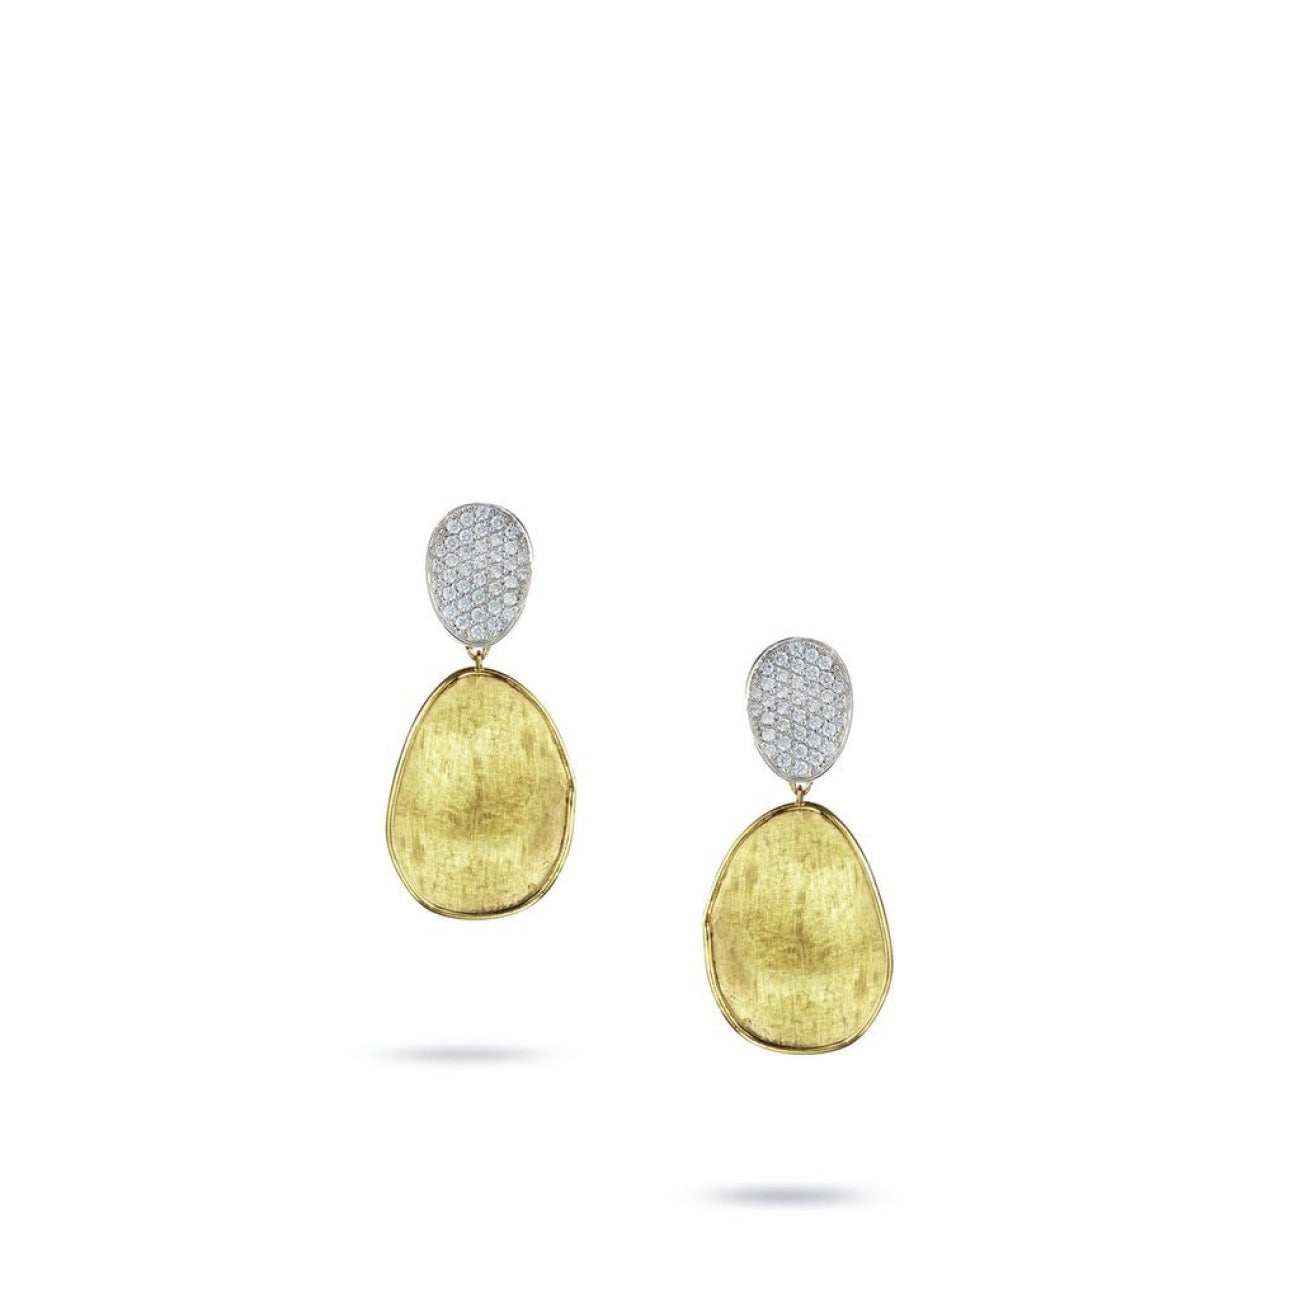 Marco Bicego Jewelry - 18K Yellow Gold & Diamond Pave Small Double Drop Earrings | Manfredi Jewels